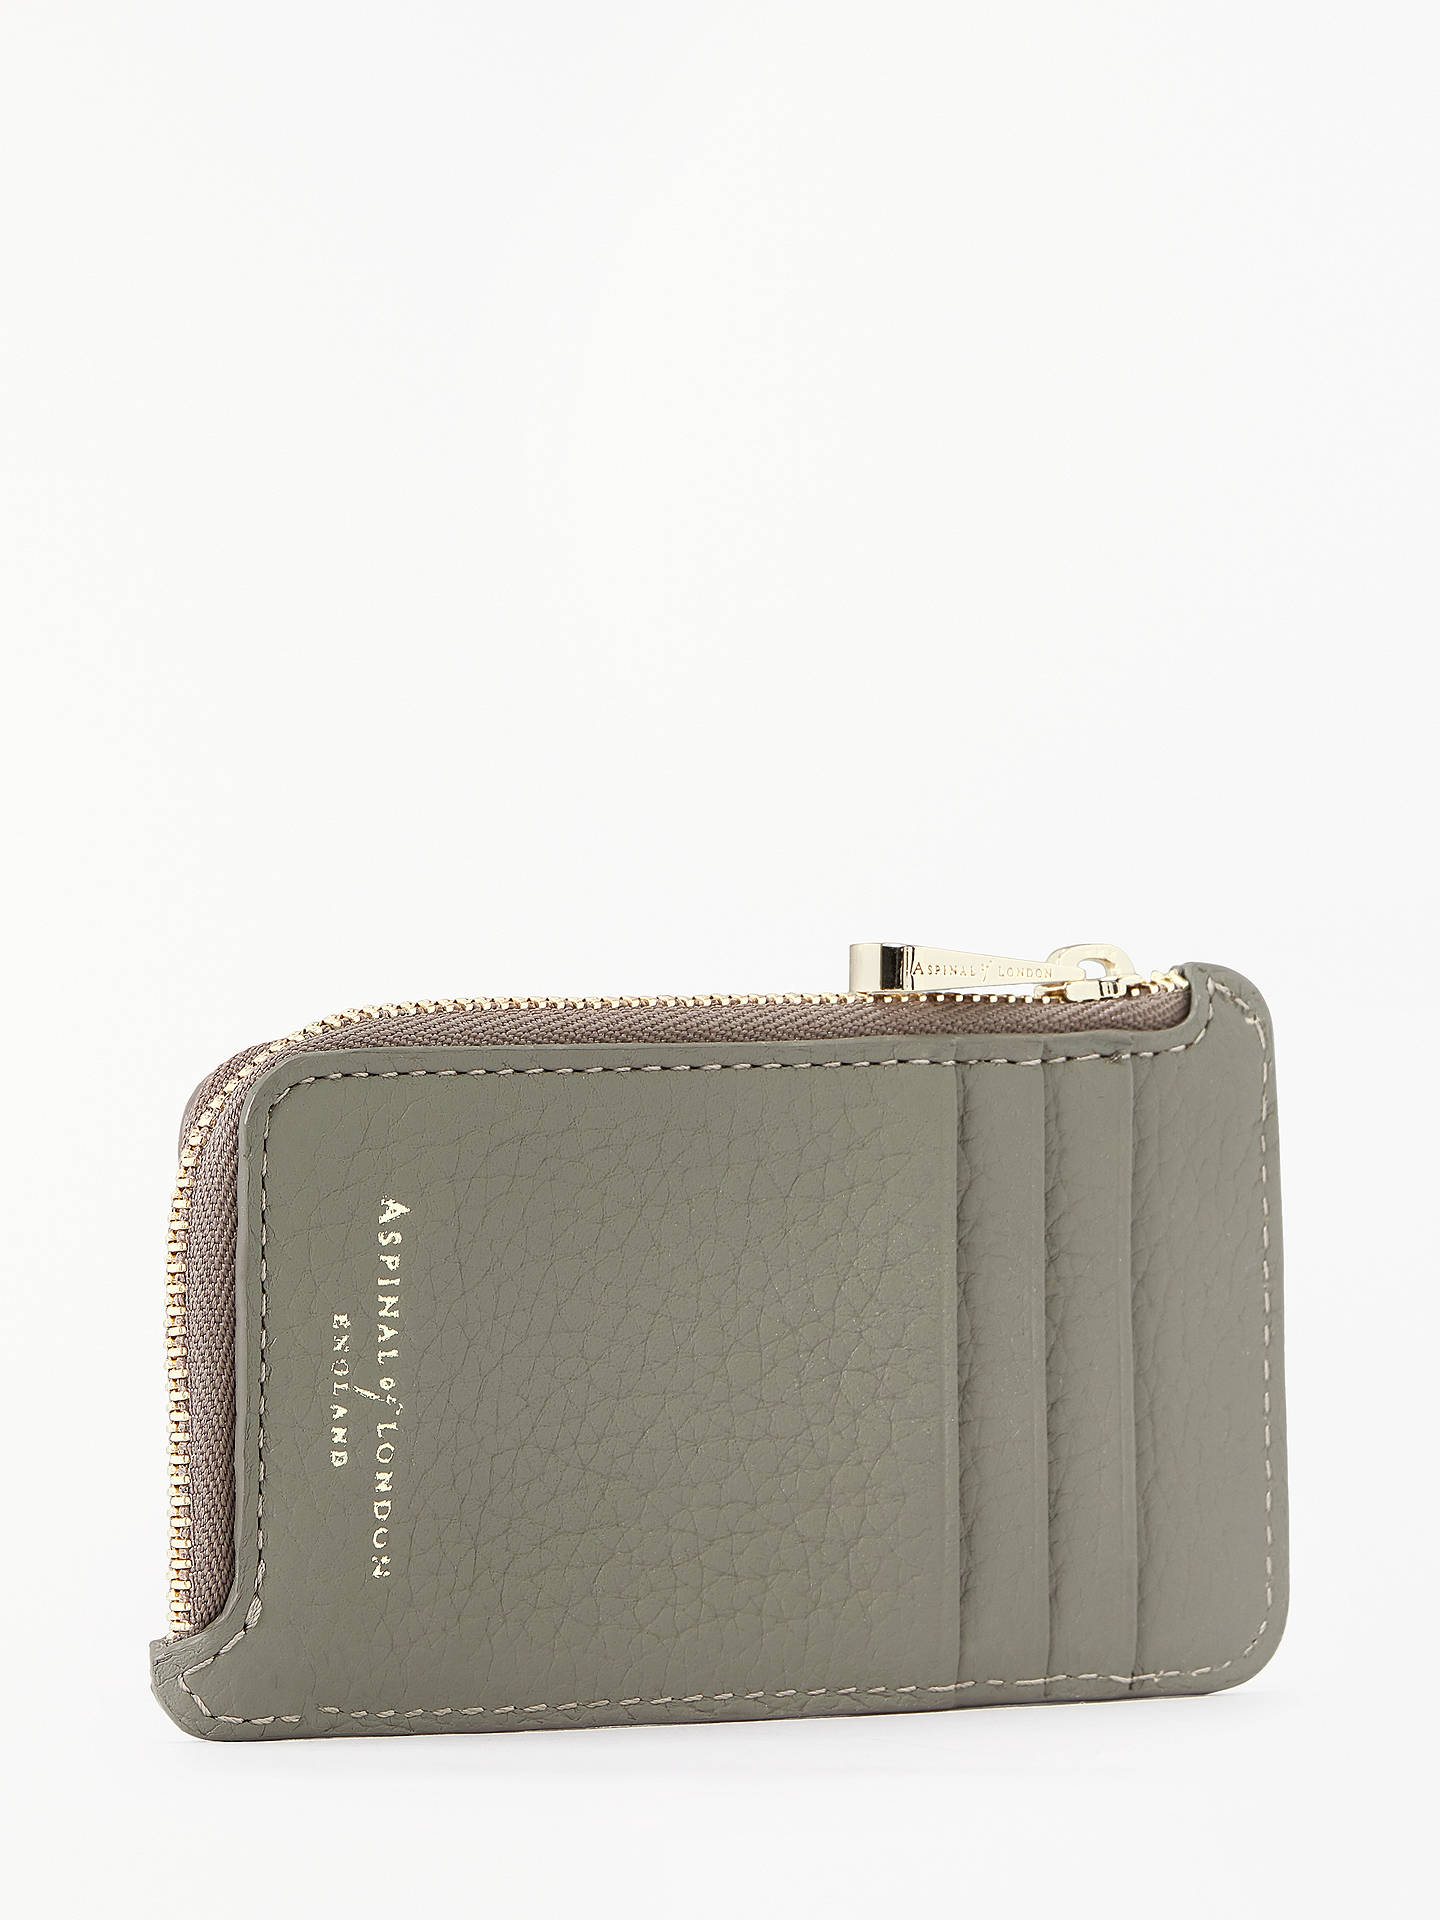 BuyAspinal of London Leather Zipped Coin Purse, Warm Grey Online at johnlewis.com